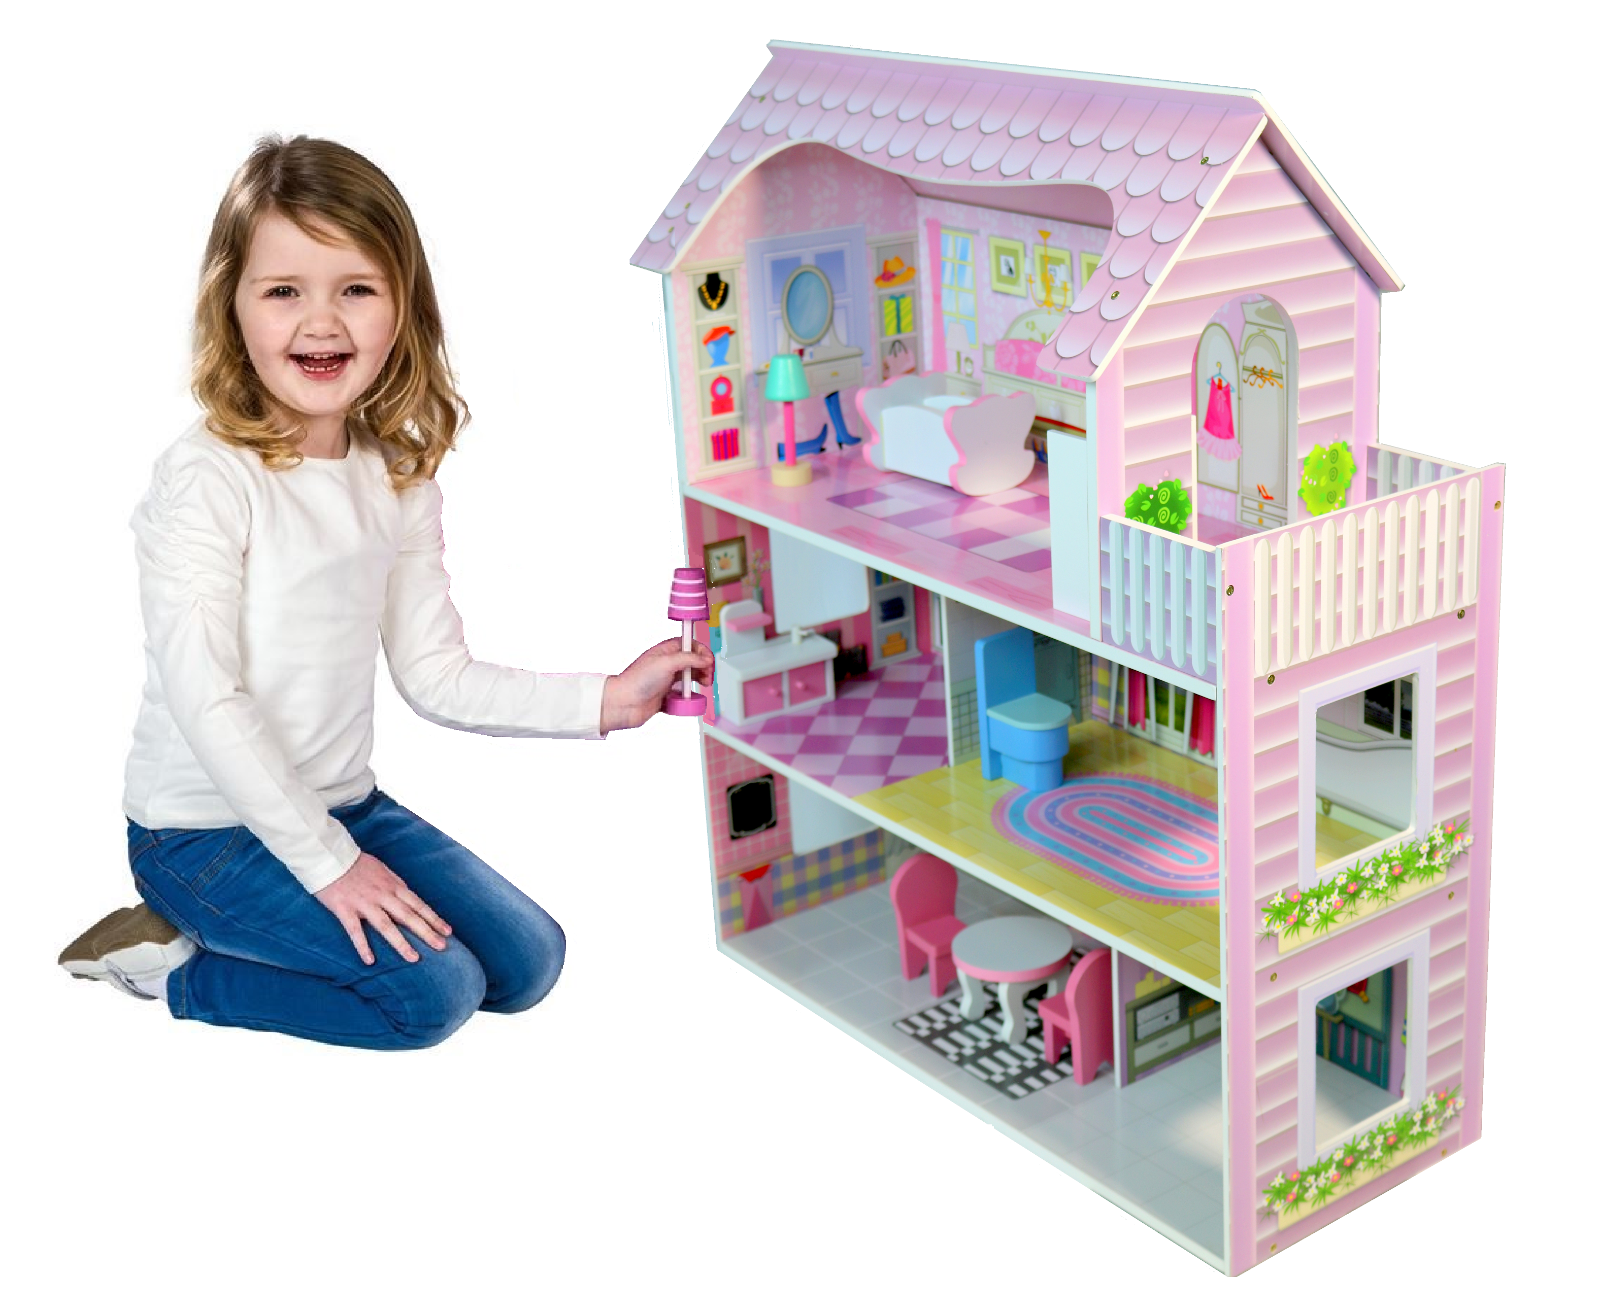 Large Children's Wooden Pink Dollhouse Fits Barbie Doll House W 8 Pcs Furniture